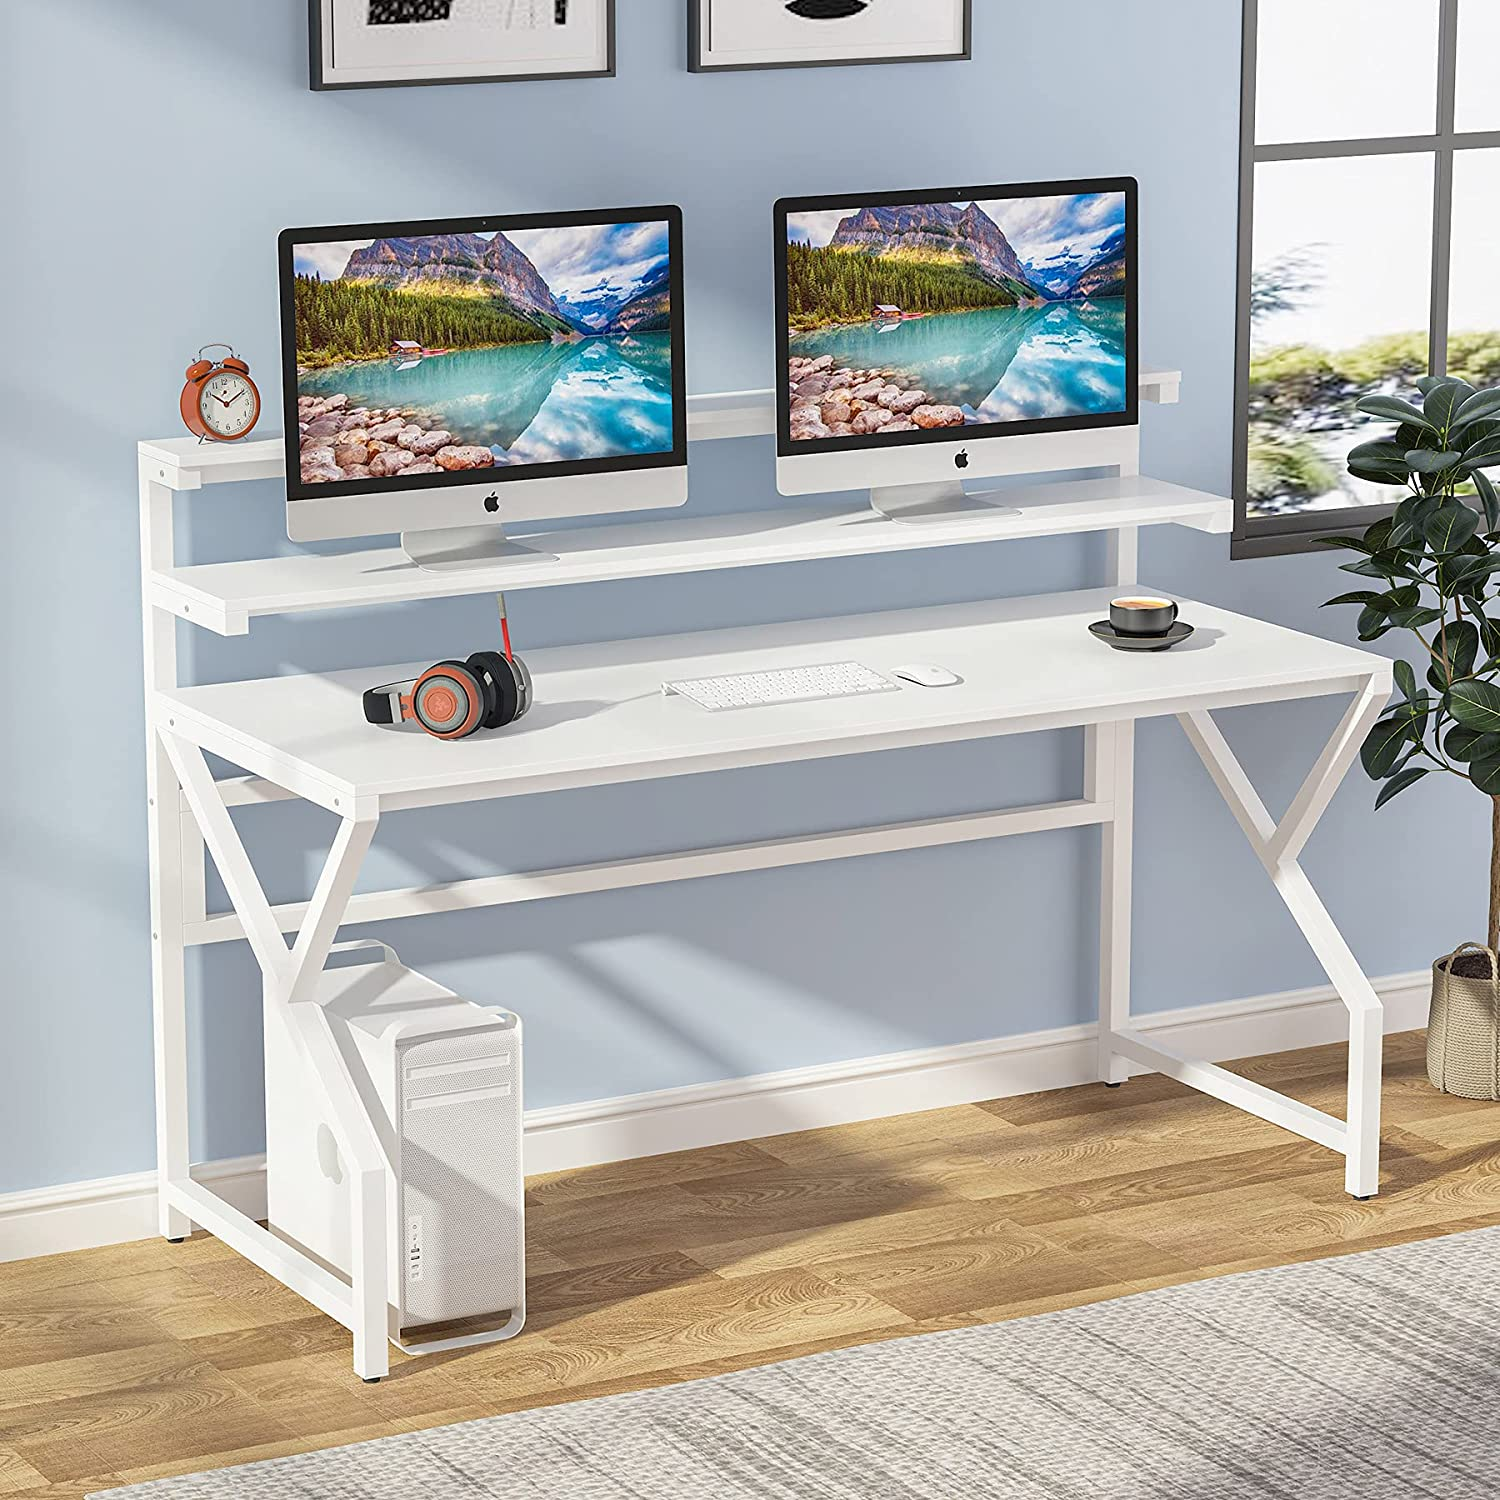 Tribesigns Computer Desk with Monitor Stand Inch Moder 1 year warranty Large Animer and price revision 55